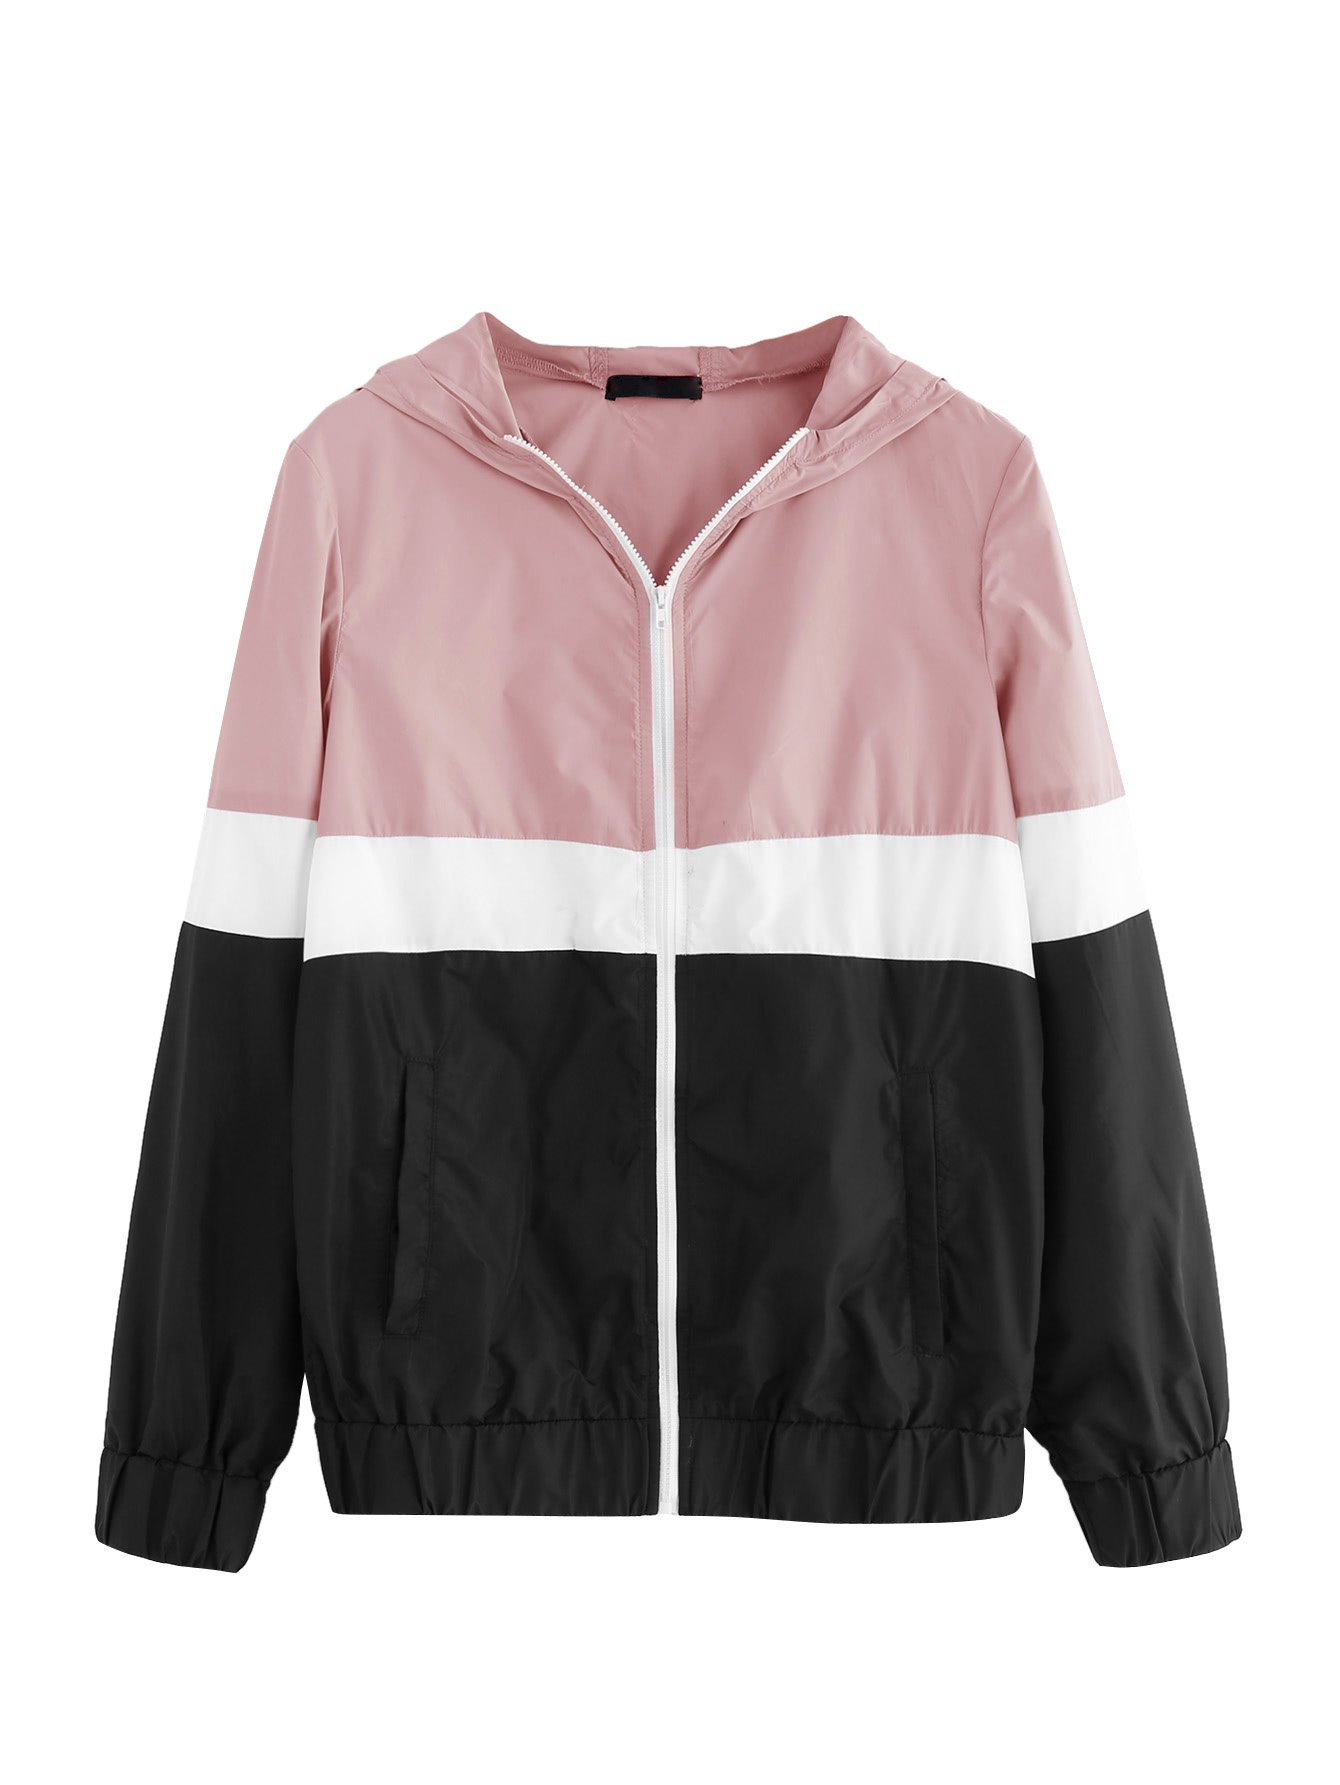 Floerns Women's Color Block Hooded Casual Thin Windbreaker jacket Black Pink and Black XL